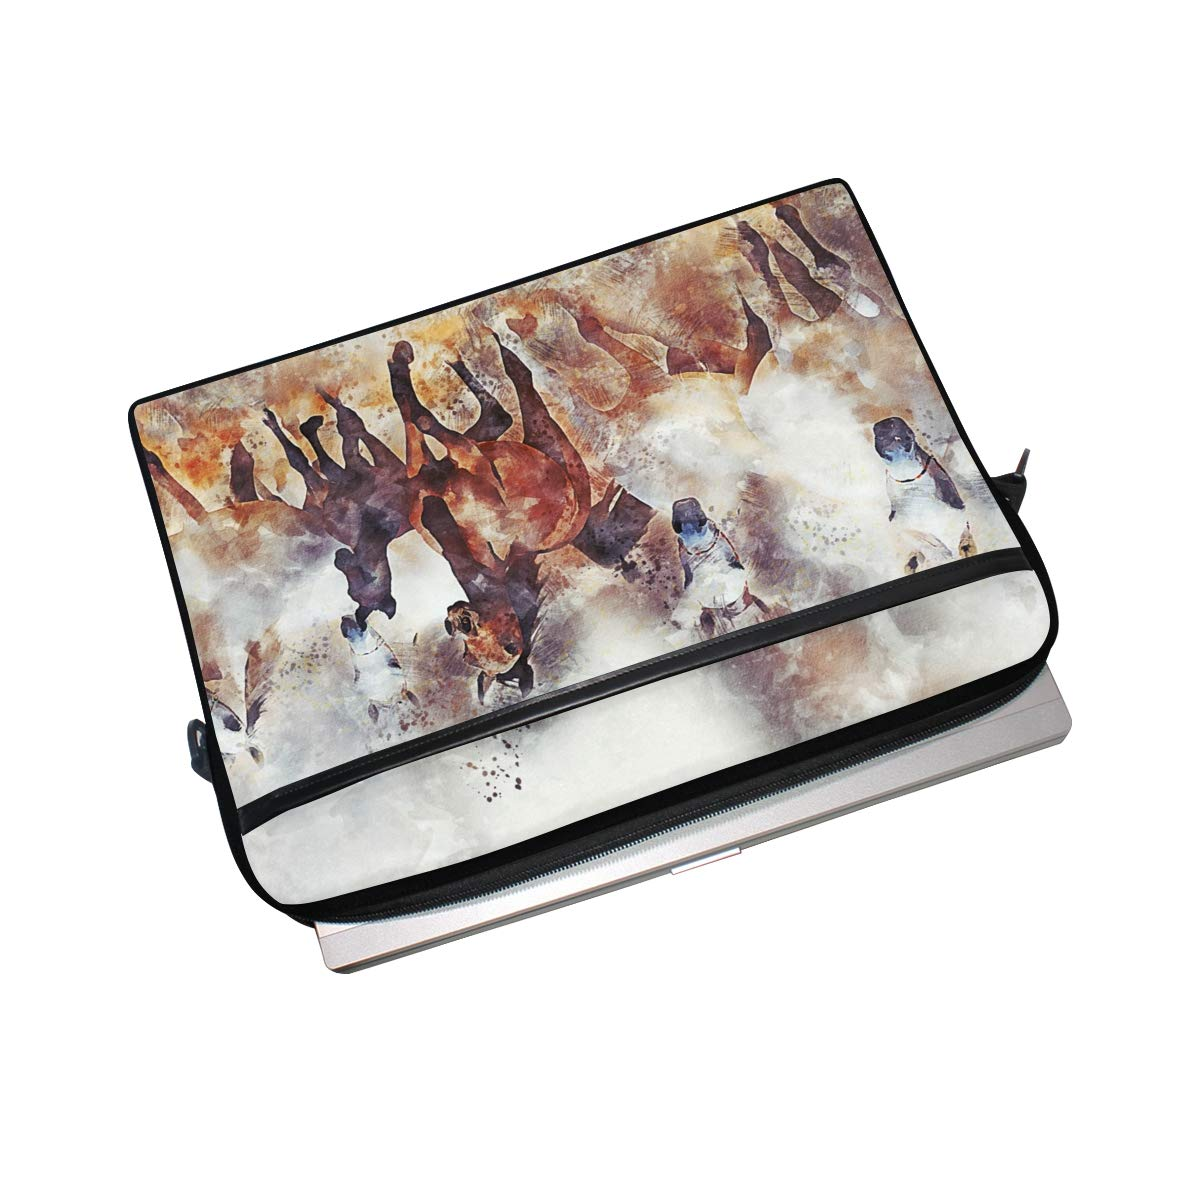 Suitable for 15 Inch Computers Briefcases Horses-4034730mens and Womens Computer Bags Shoulder Bags Handbags